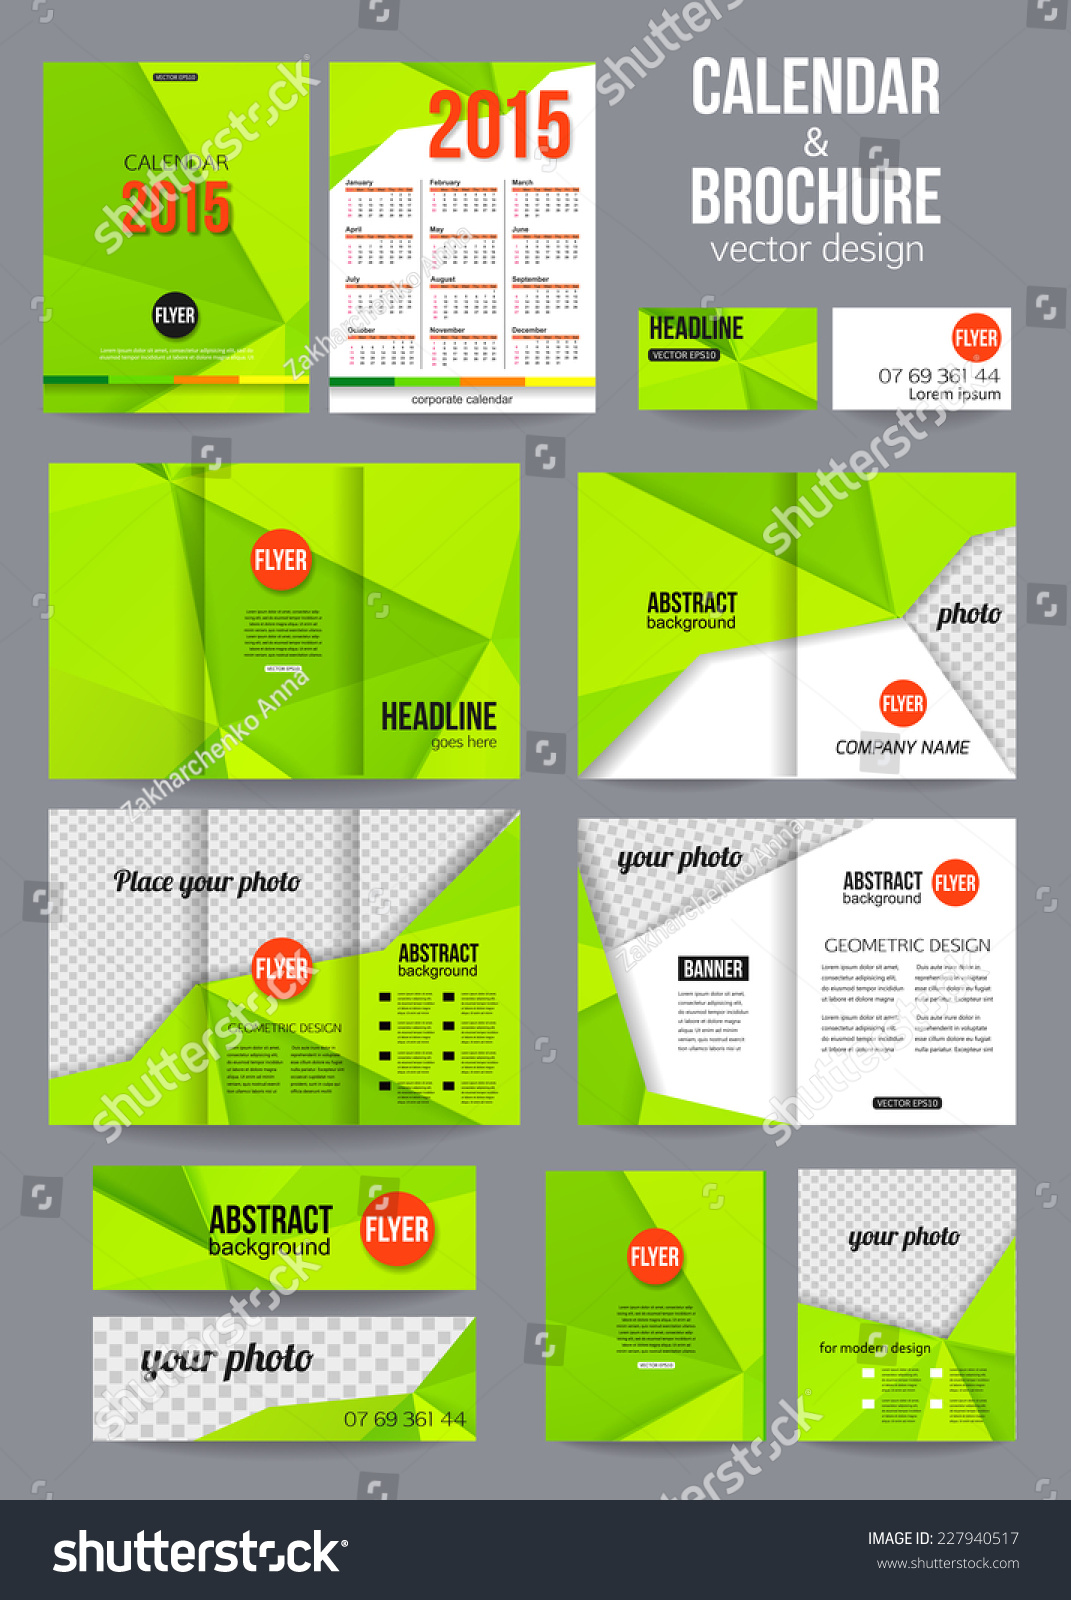 Set Of Corporate Business Stationery Templates Abstract Brochure – Calendar Flyer Template